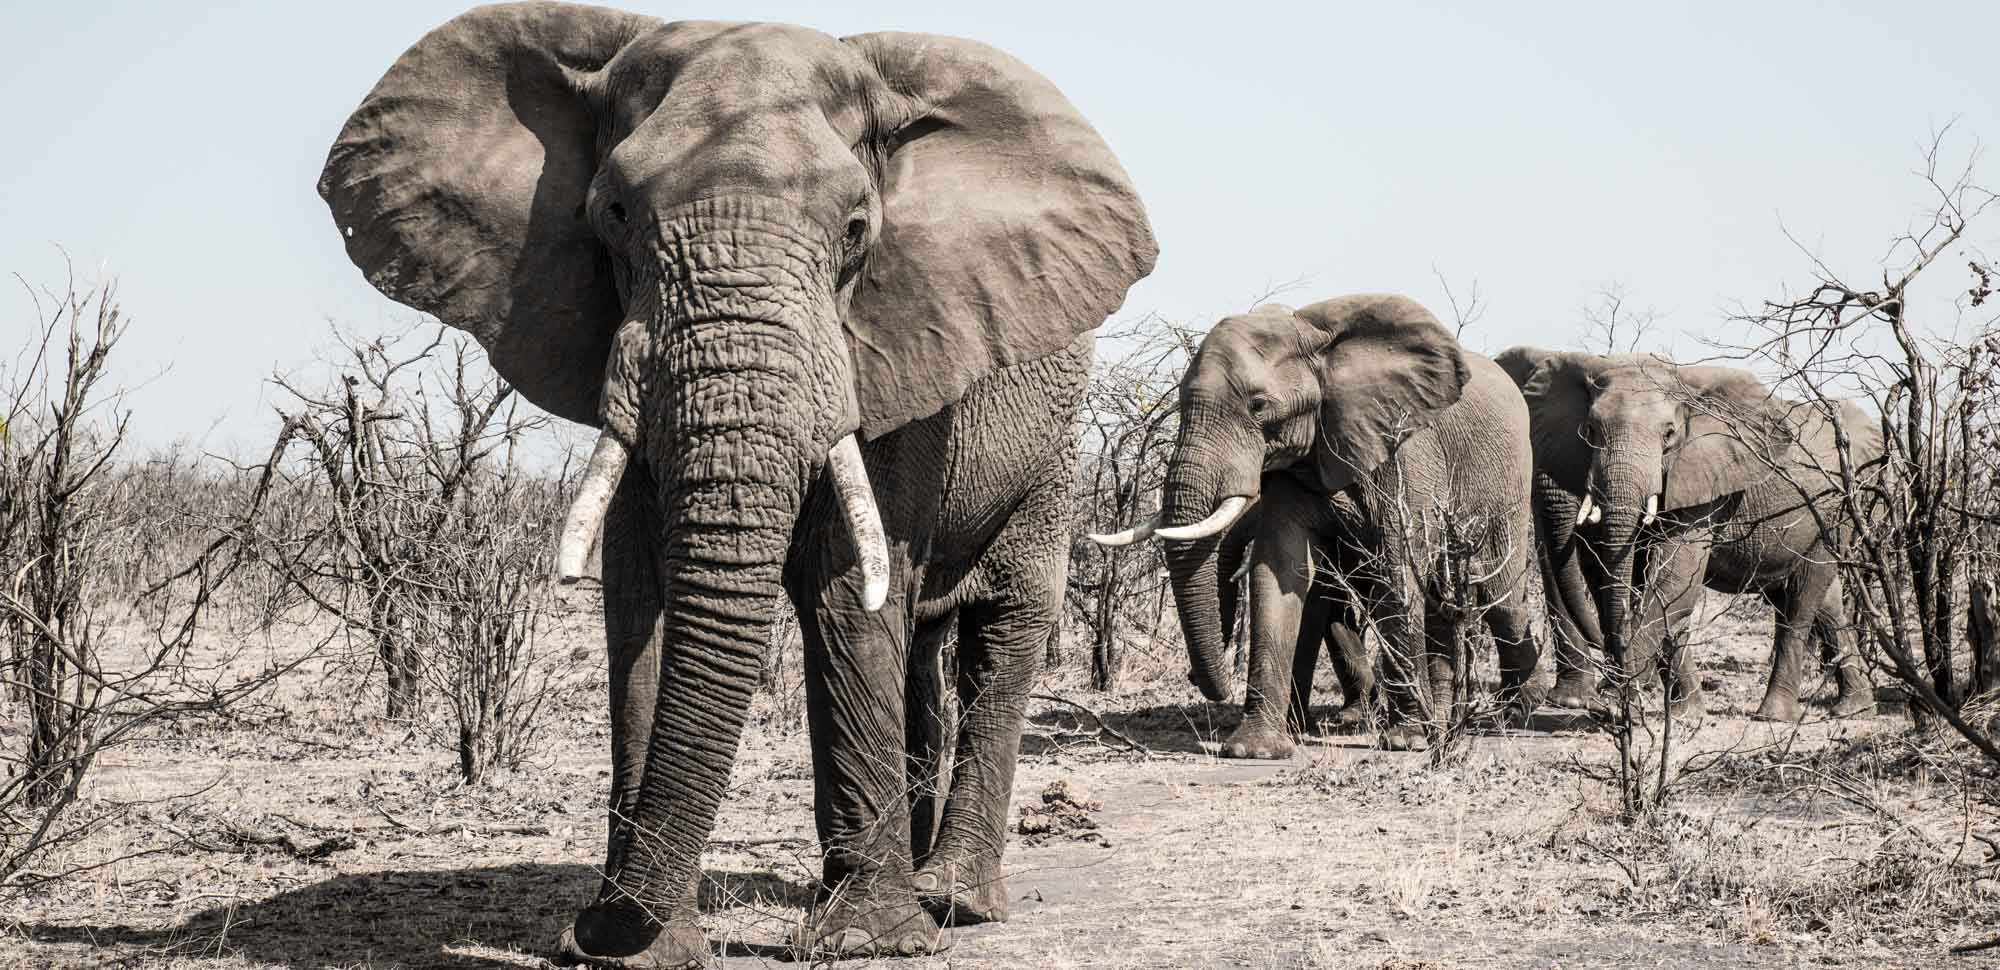 Elephants in Gonarezhou National Park in Zimbabwe